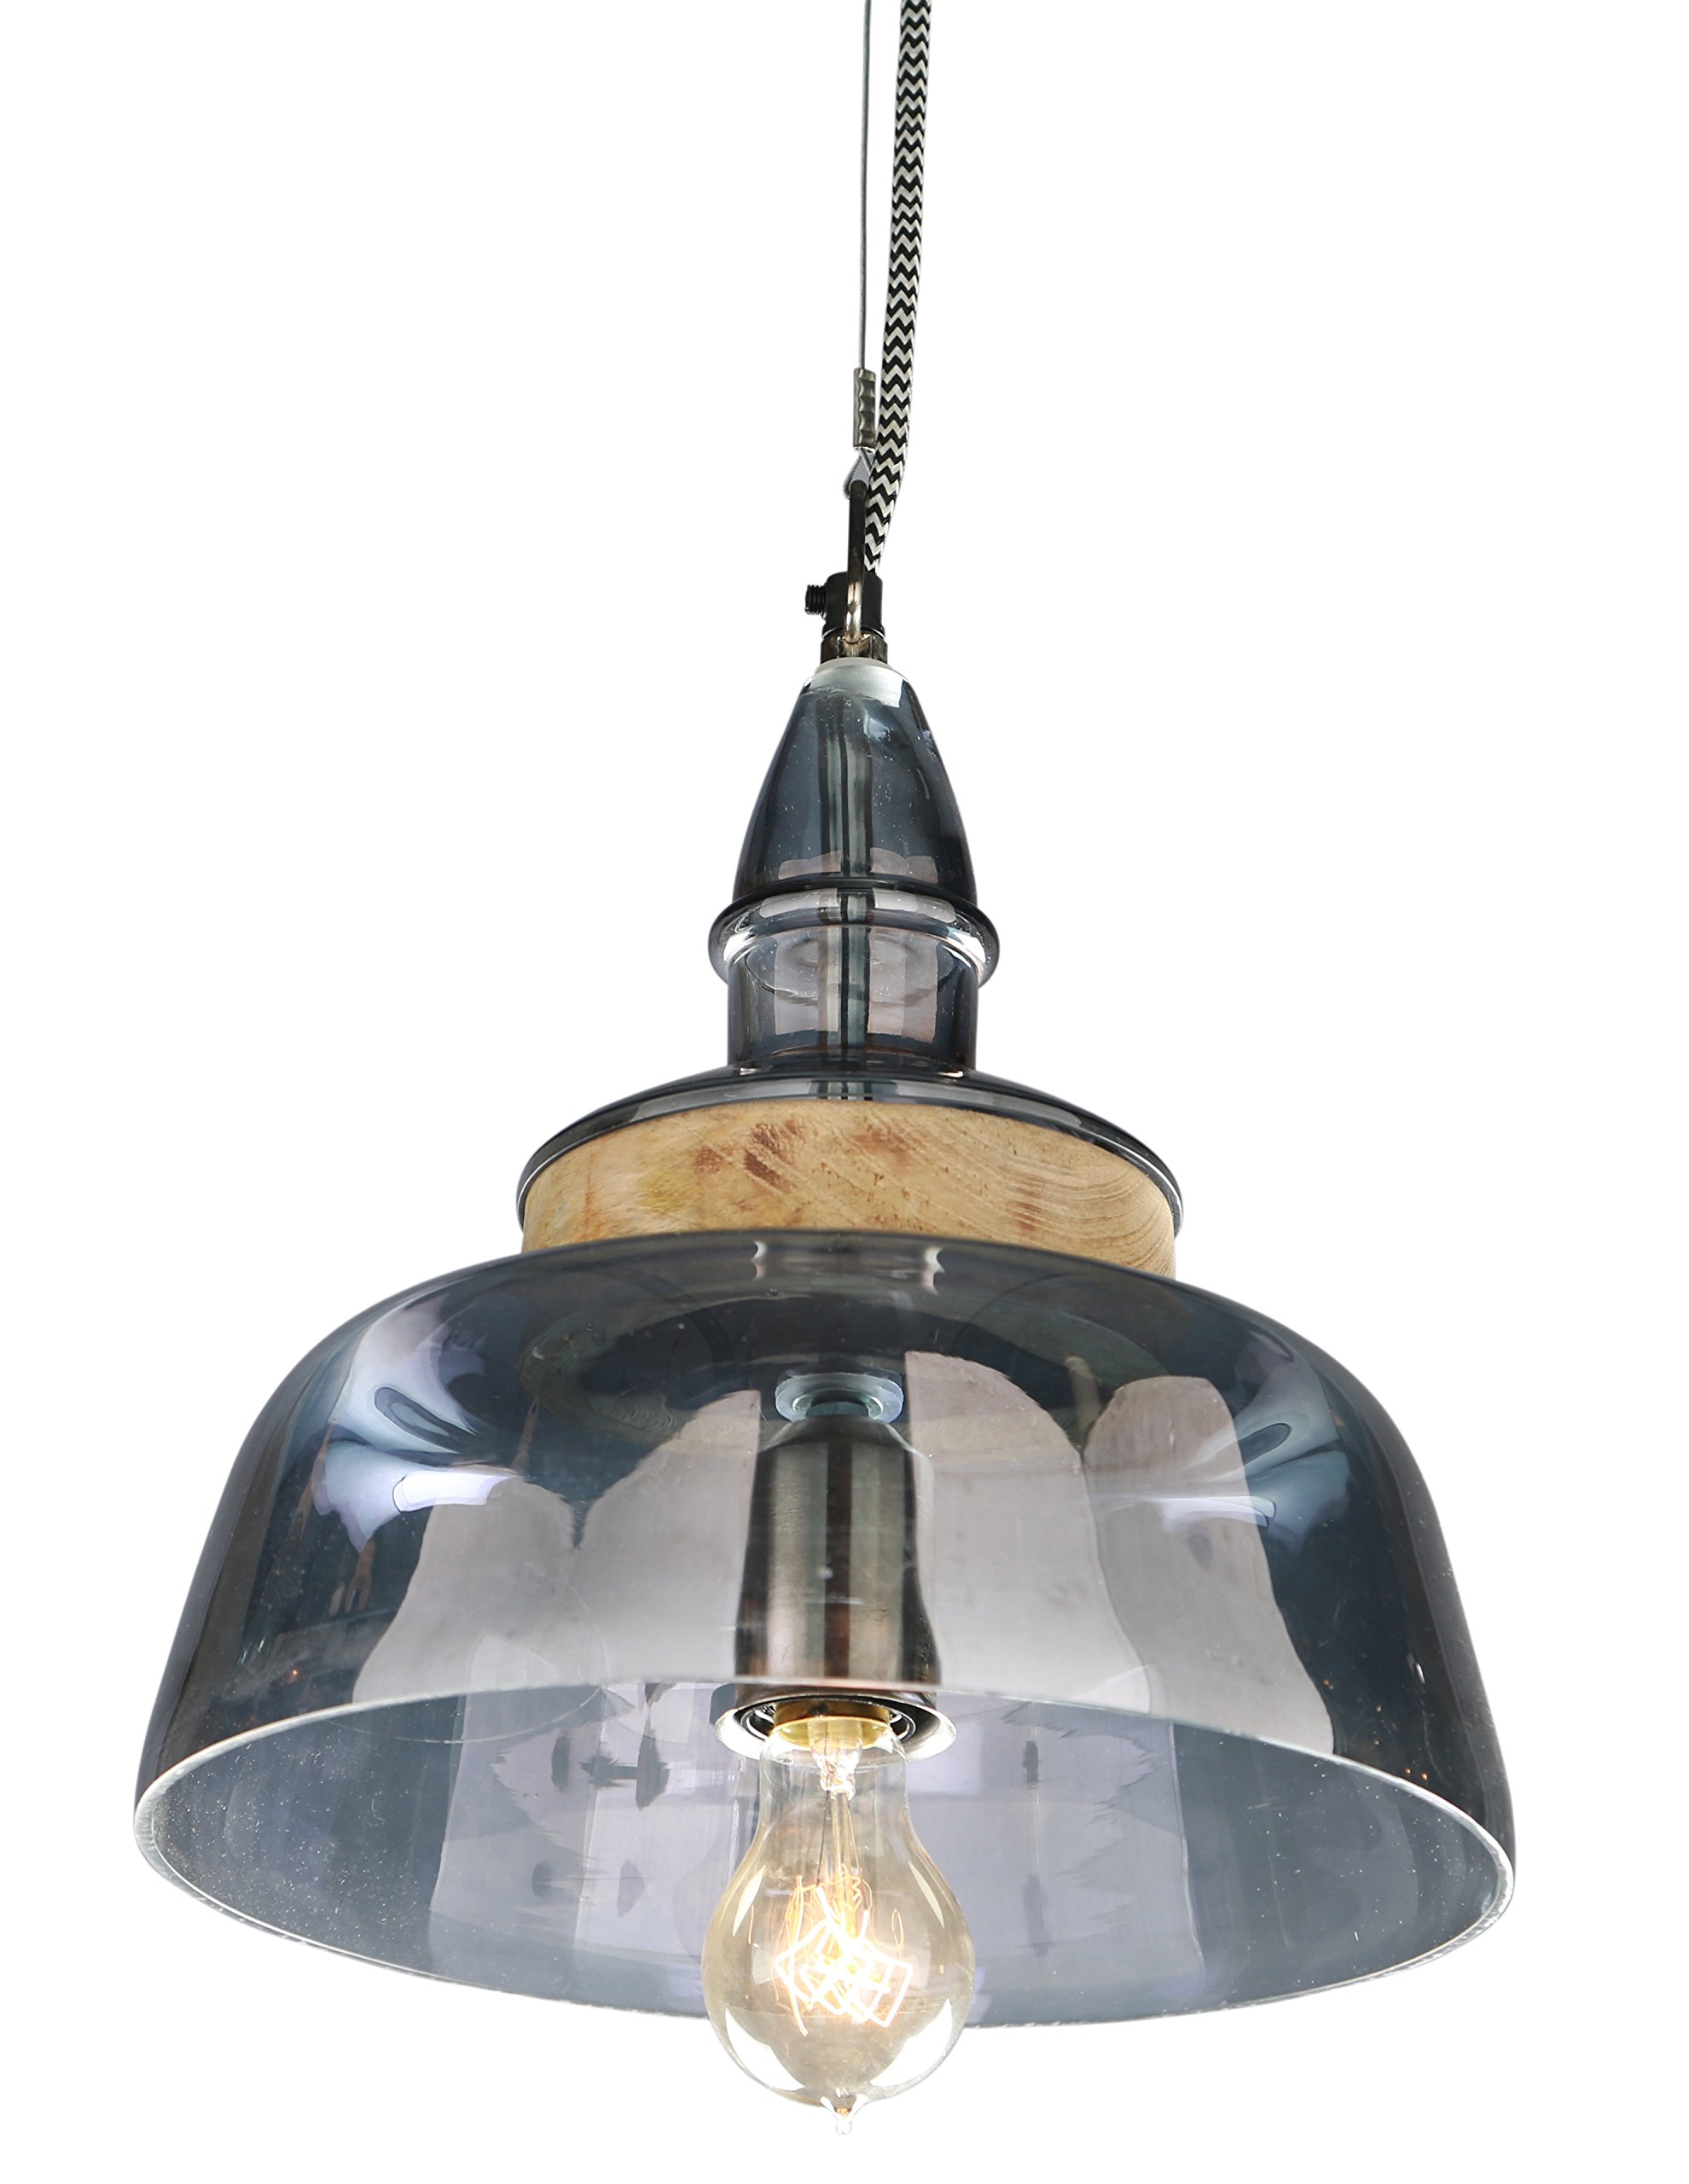 Large hanging lamp SPECTRUM in smoky glass with a wood accent top. Black&White Woven Chain.